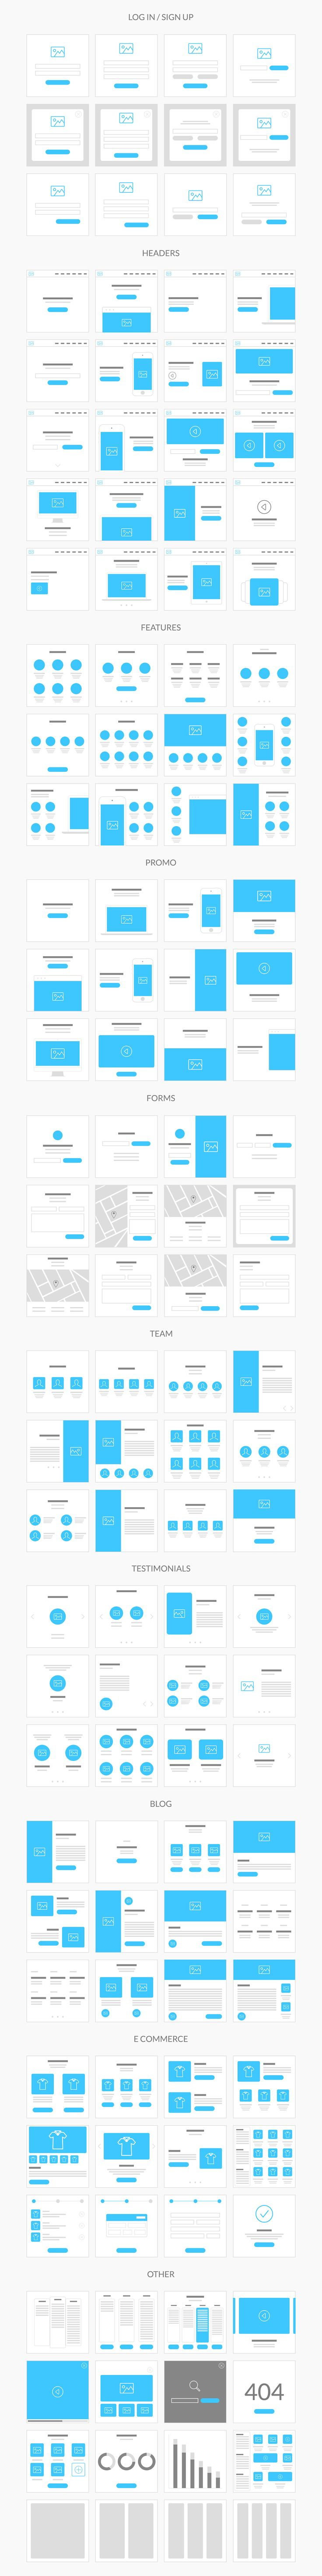 Flowy is made with fast workflow in mind, so we created 236 ready to use templates, built on the 1170 grid and in Photoshop file format. You can create flowcharts for both mobile and web projects of any complexity and show them to your team or clients in … More